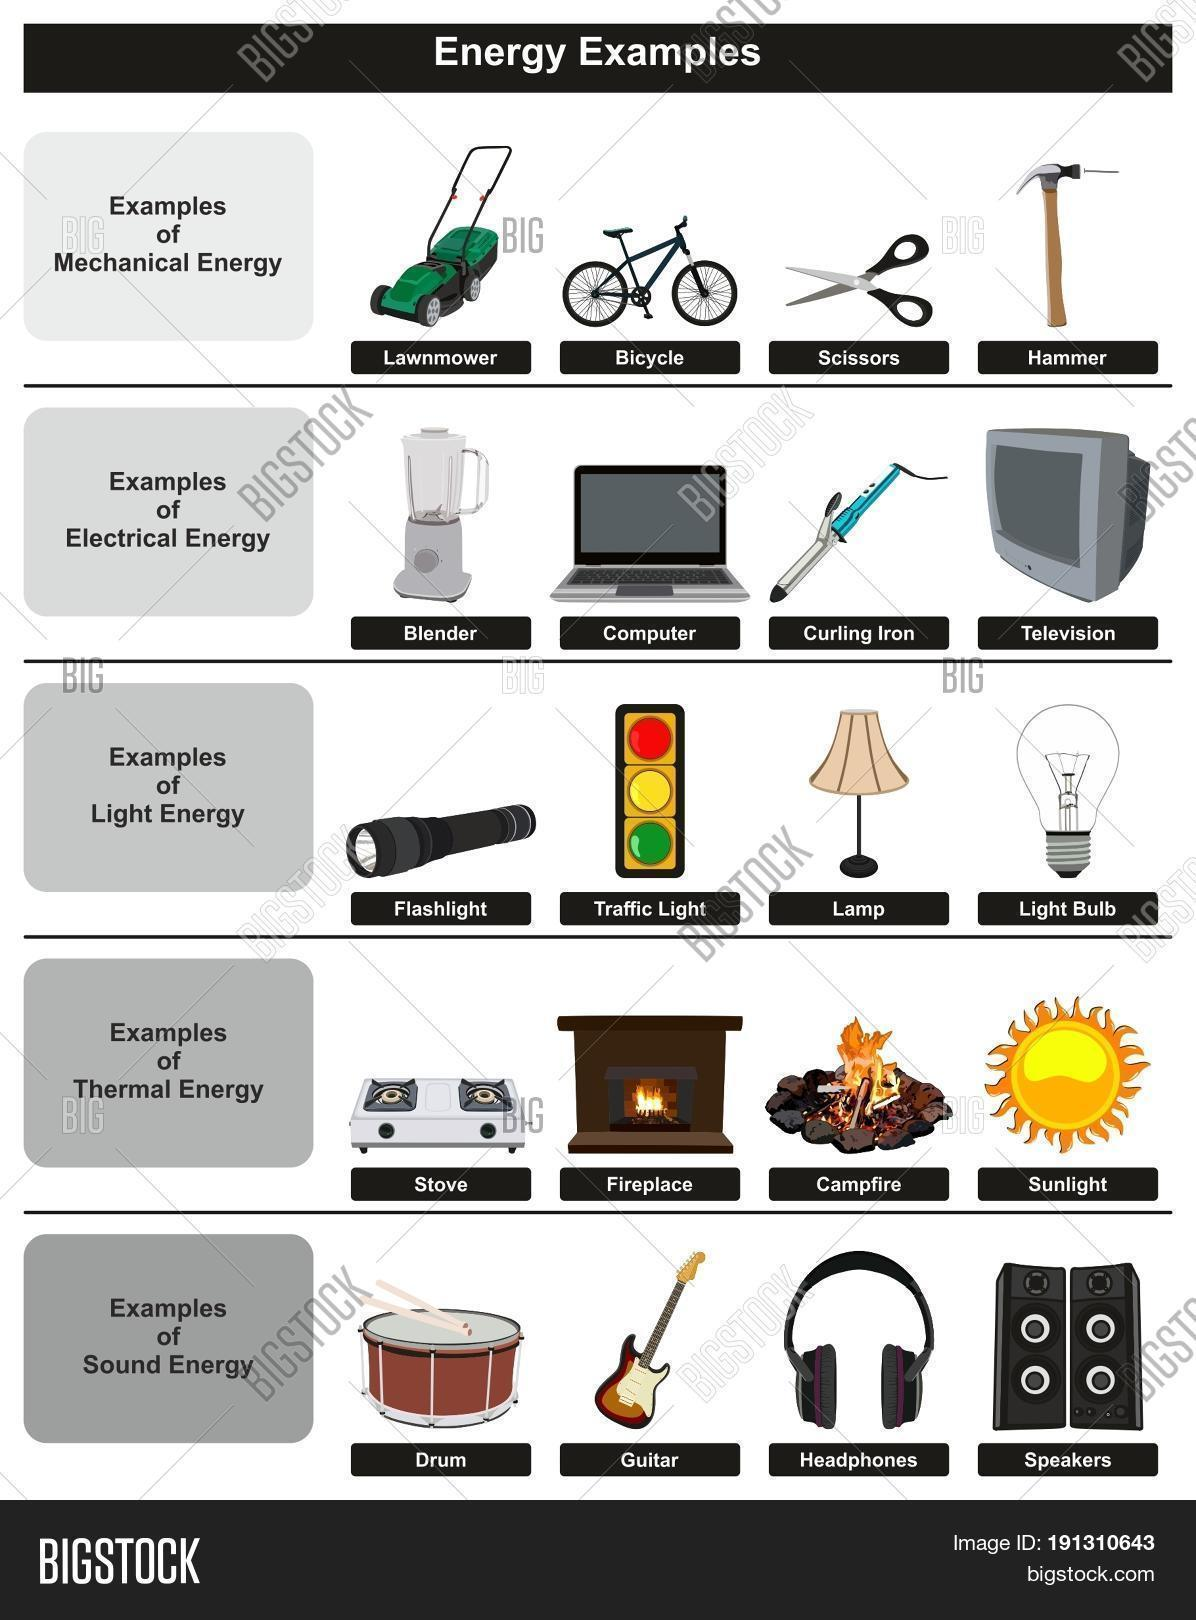 Energy Examples Image Amp Photo Free Trial